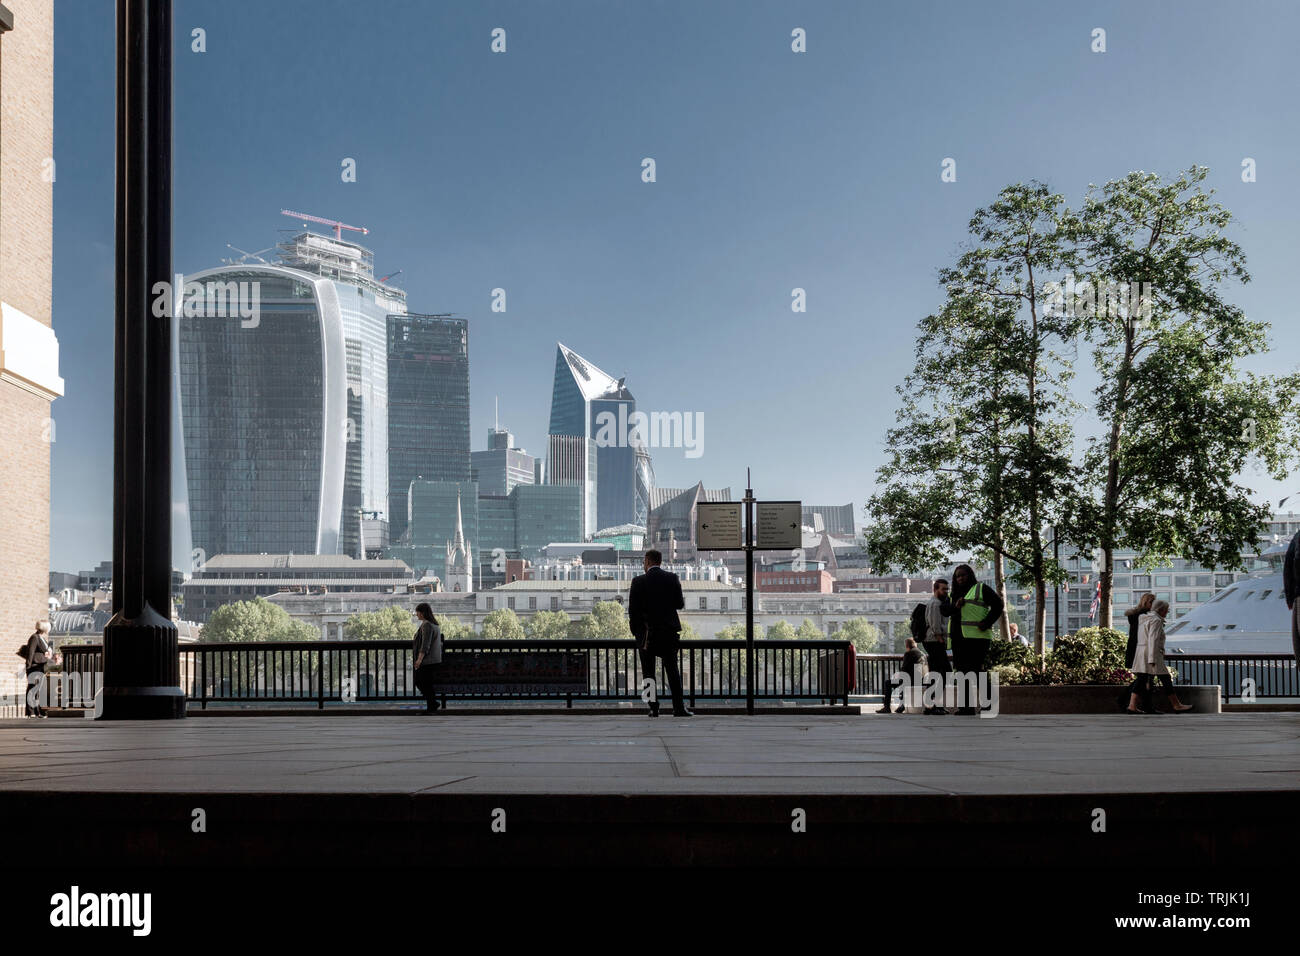 City of London Skyline, England, UK - Stock Image